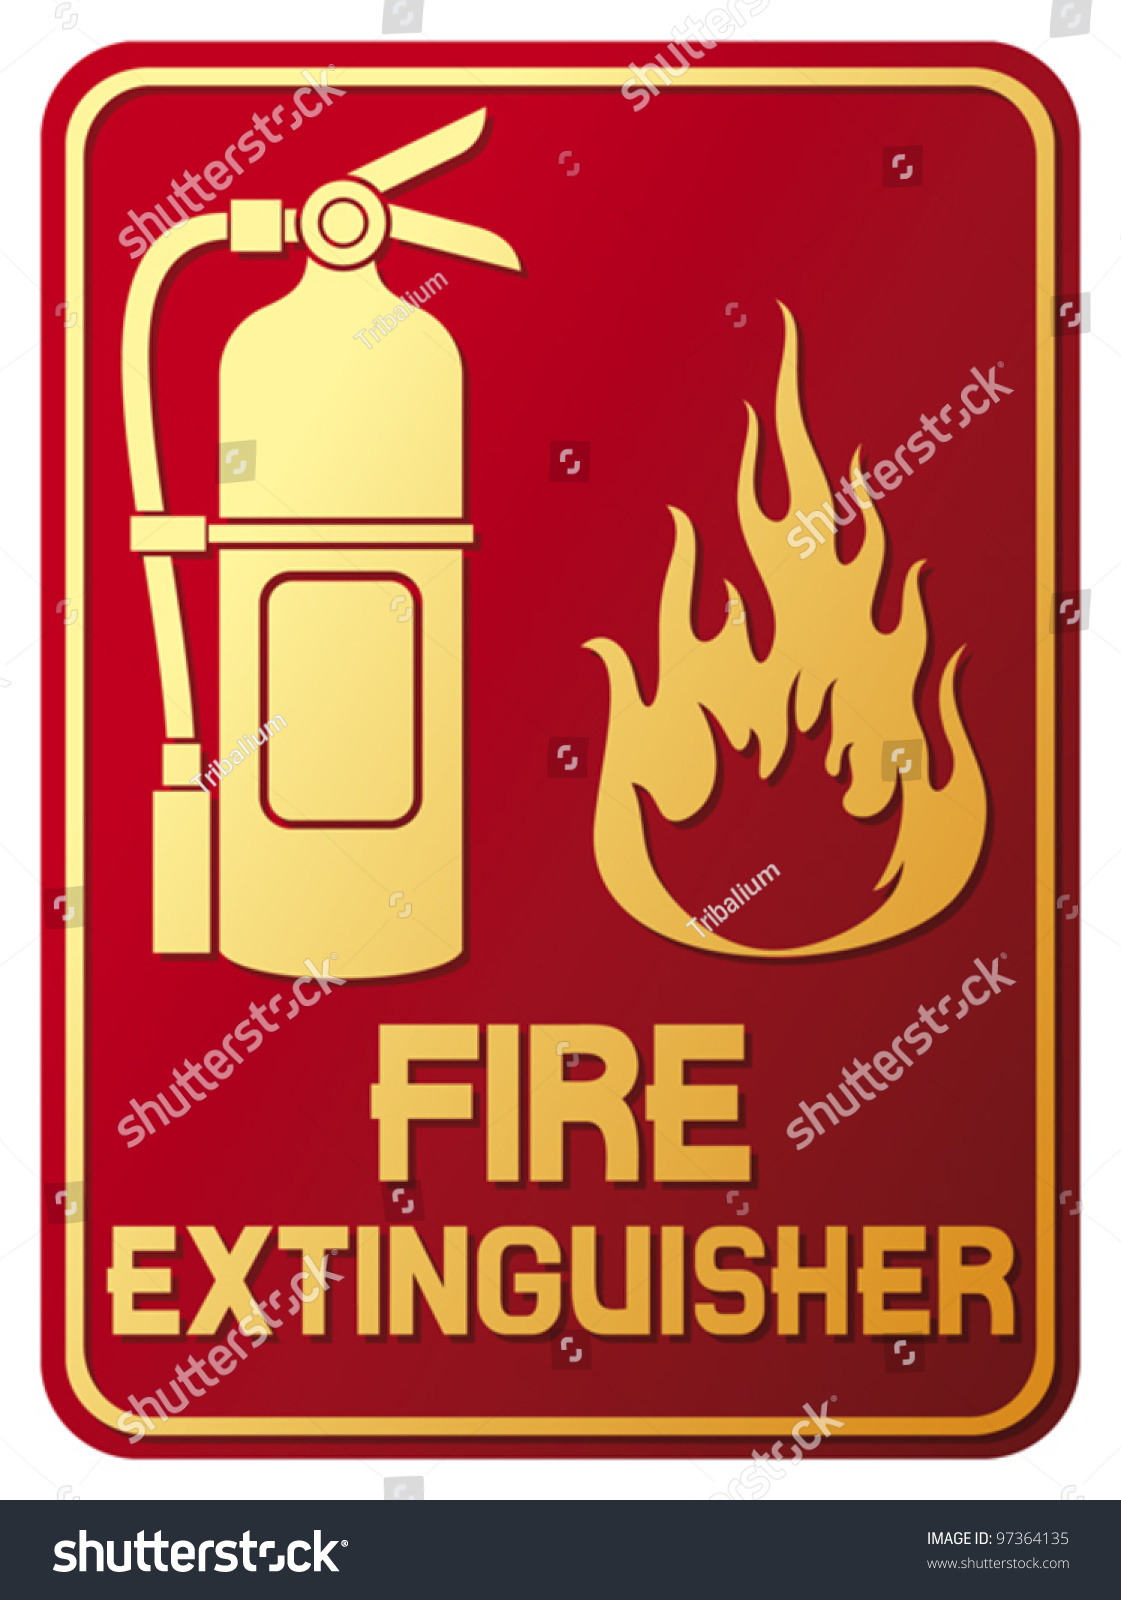 fire extinguisher sign stock vector illustration 97364135